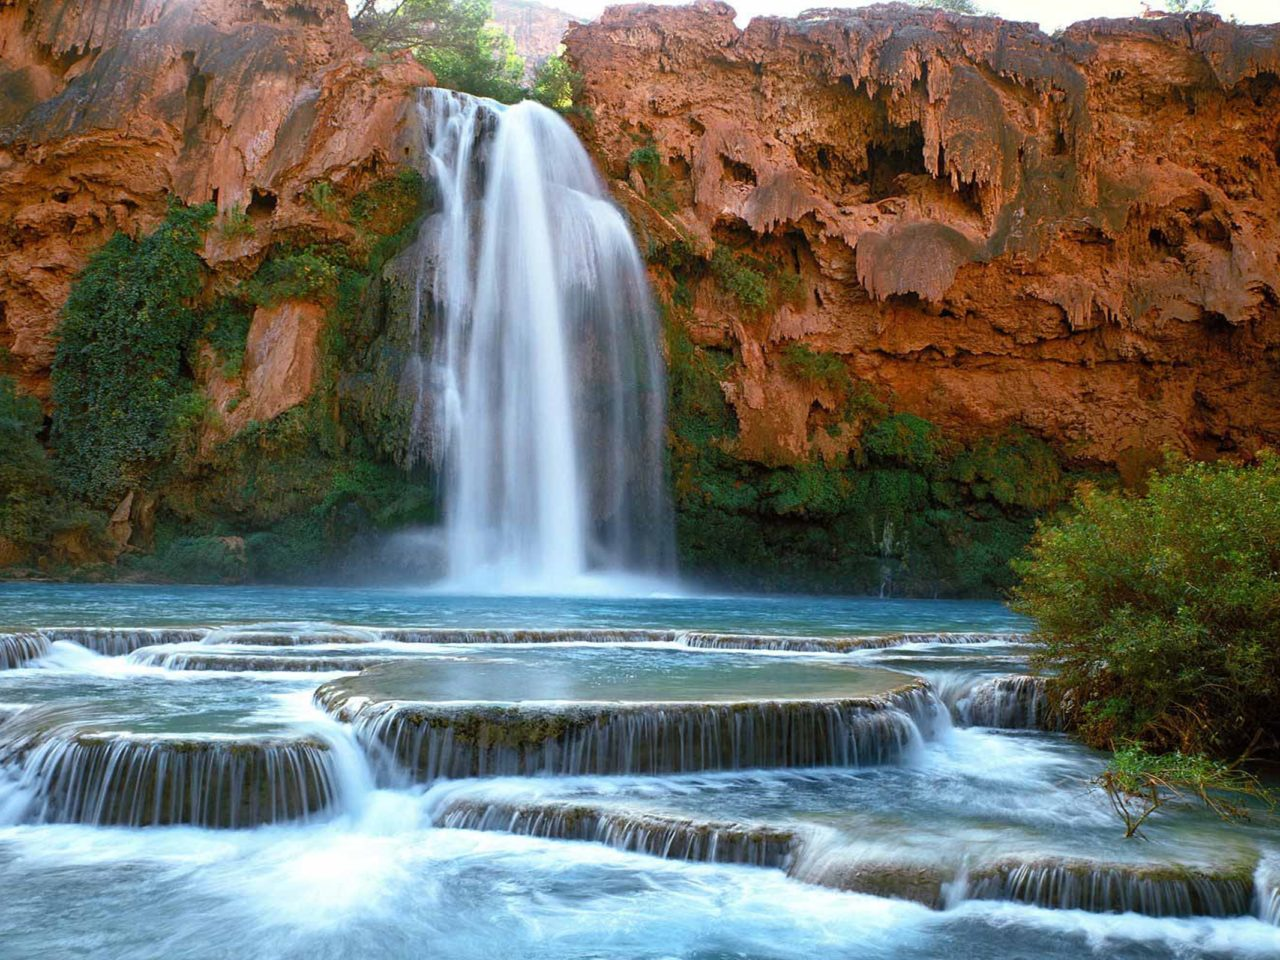 Fall Autumn Hd Wallpaper 1920x1080 Havasu Falls Arizona Wallpaper Wallpapers13 Com